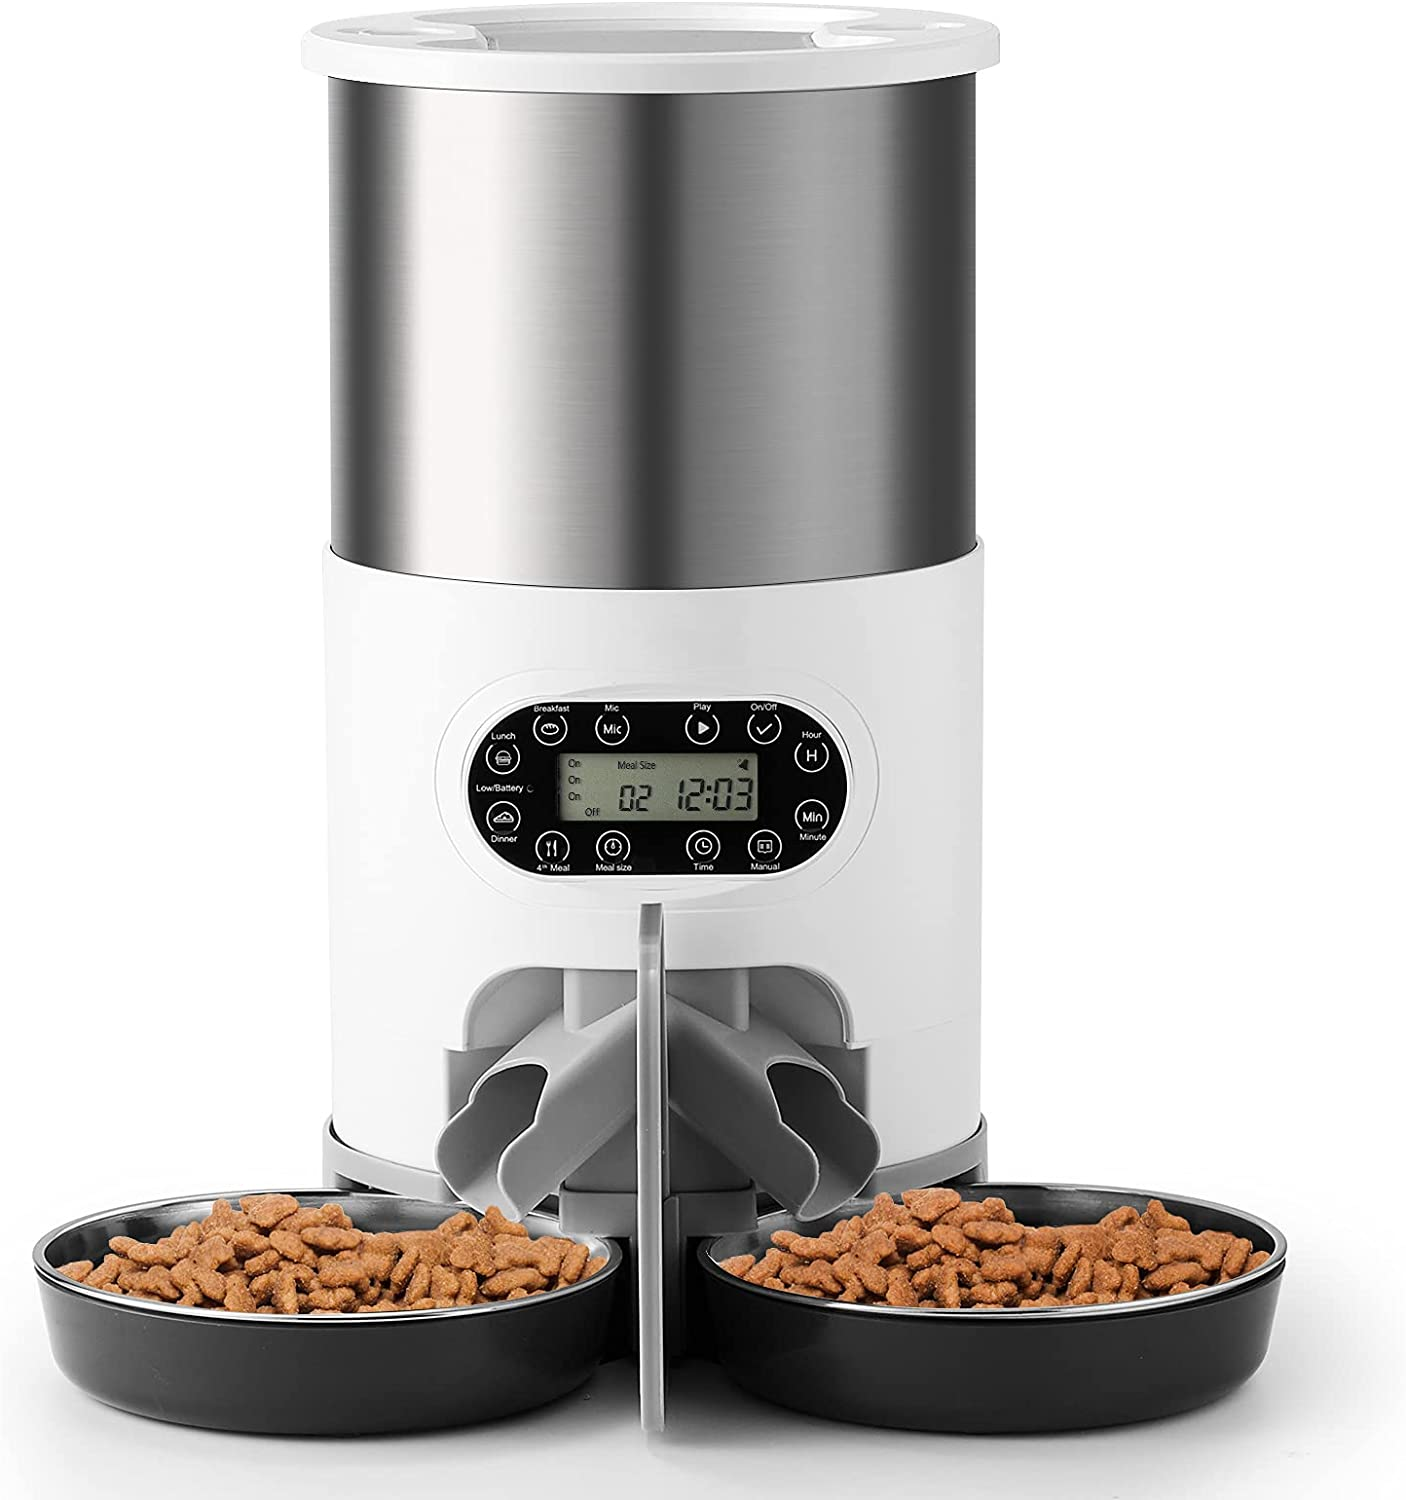 iPettie Automatic Pet Feeder, Stainless Steel Pet Food Dispenser with Two-Way Splitter, Voice Recorder, Dishwasher Safe Container & Bowl, Up to 50 Portion Control 4 Meals Daily for 2 Dogs or Cats